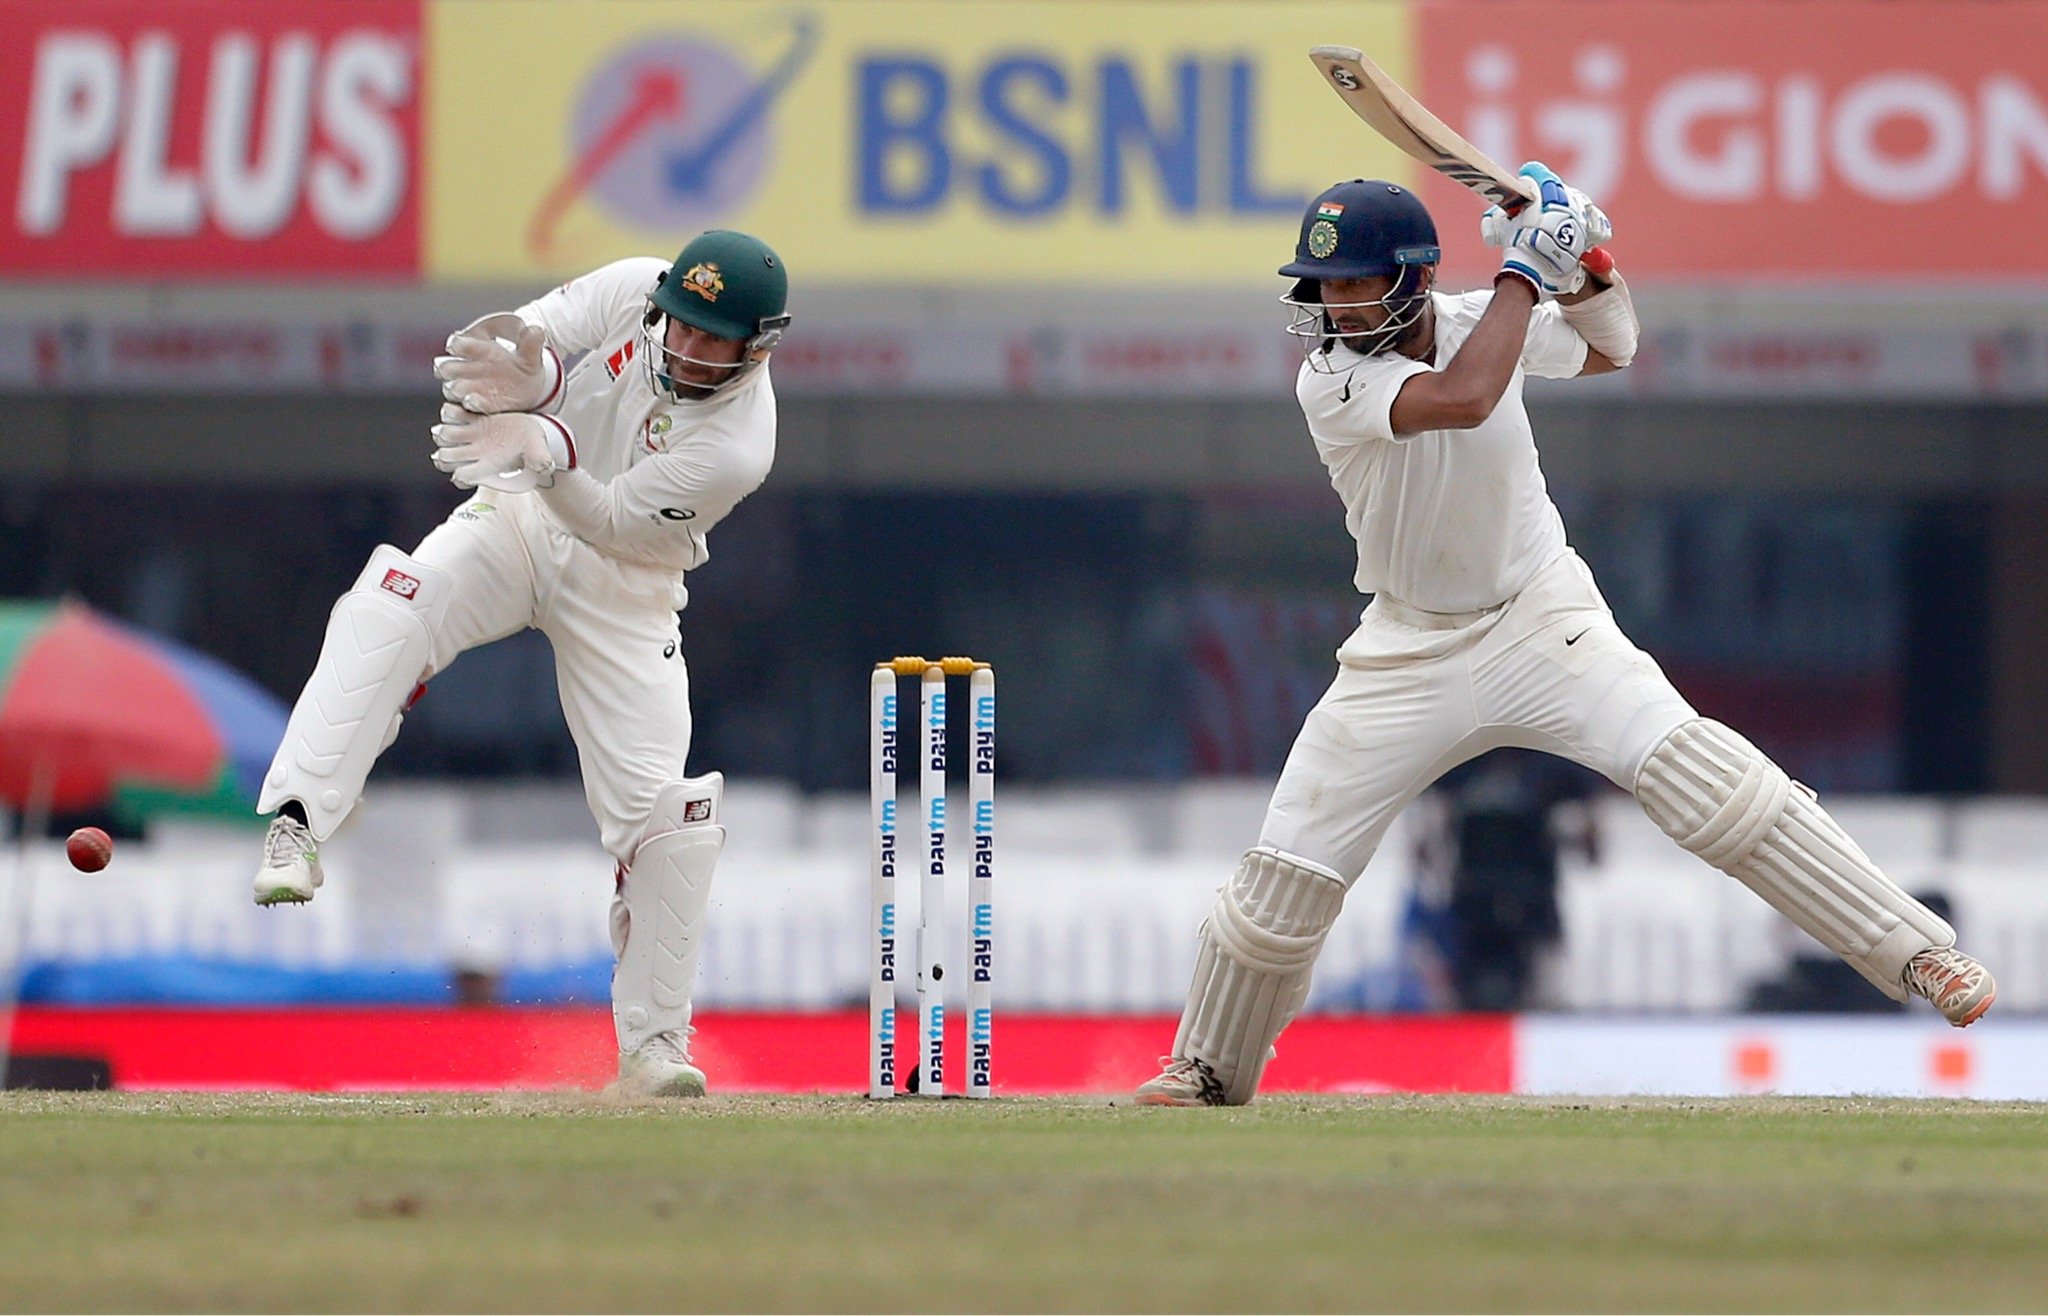 India's Cheteshwar Pujara, right, plays a shot during the fourth day of the third test against Australia in Ranchi, India, Sunday, March 19. (AP Photo/Aijaz Rahi)